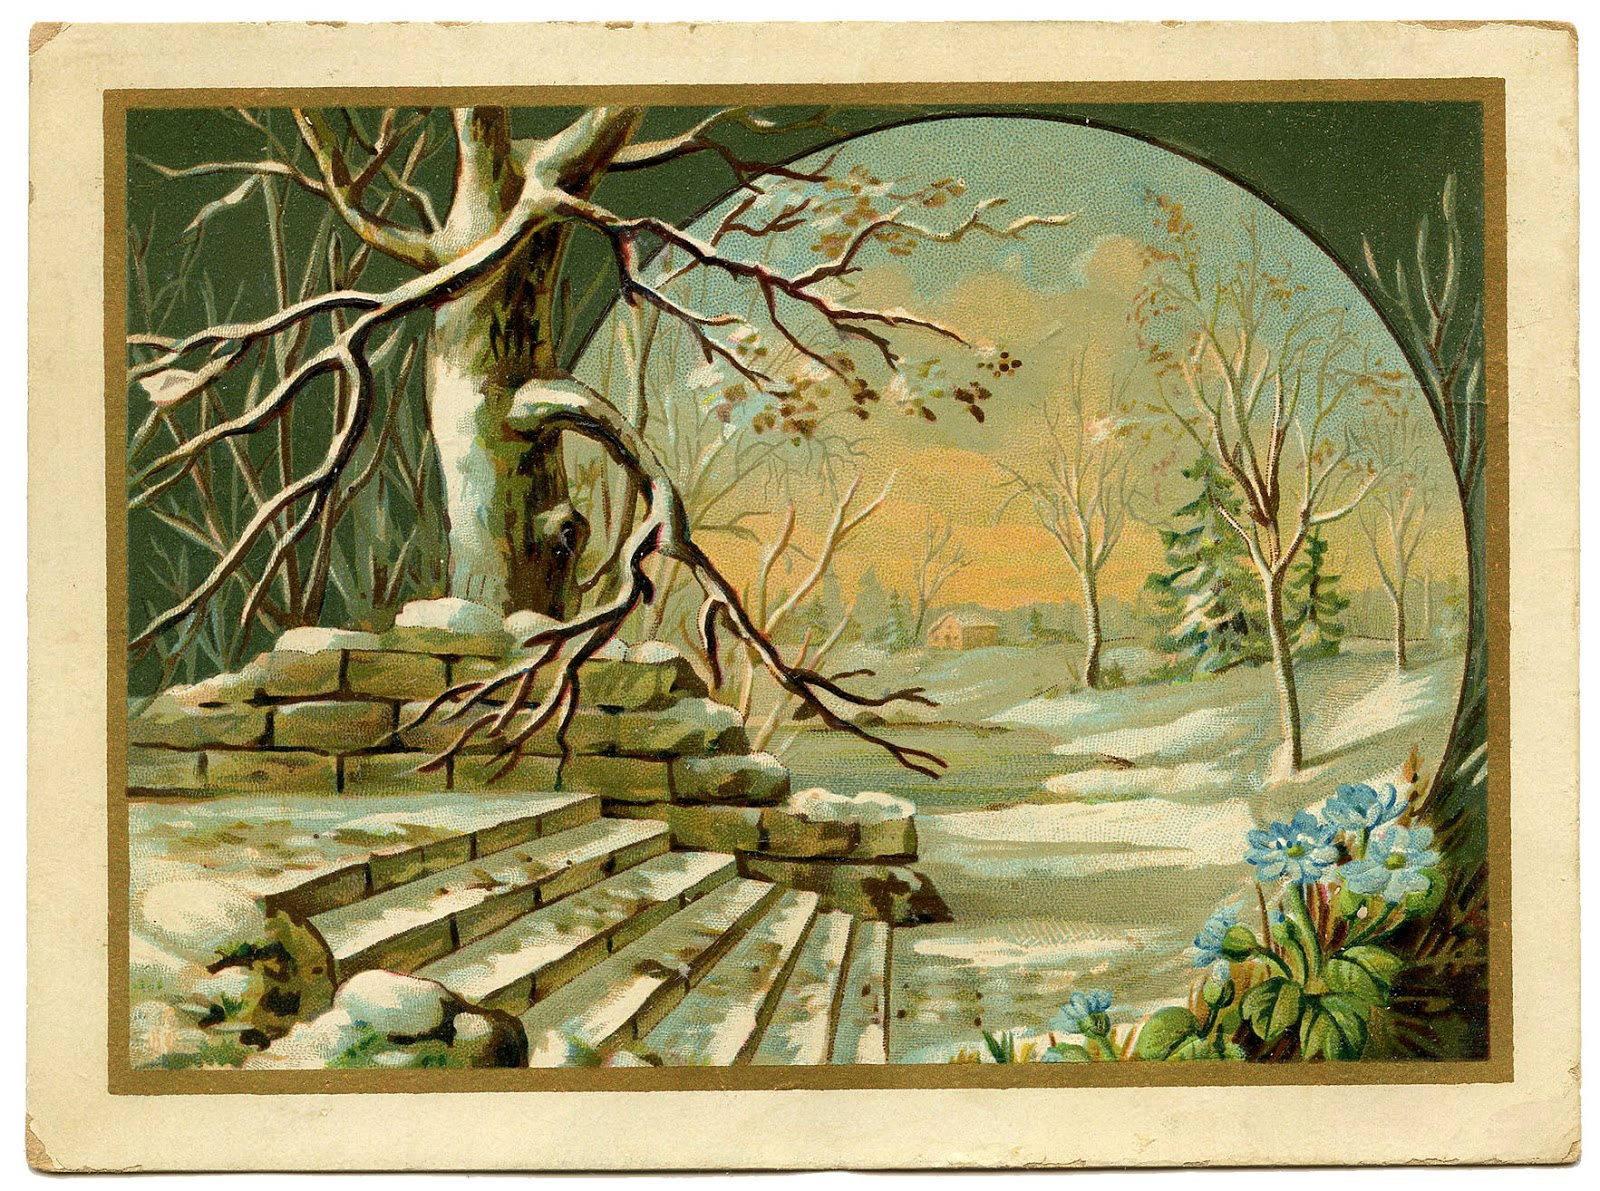 Vintage Graphic Winter Landscape The Graphics Fairy